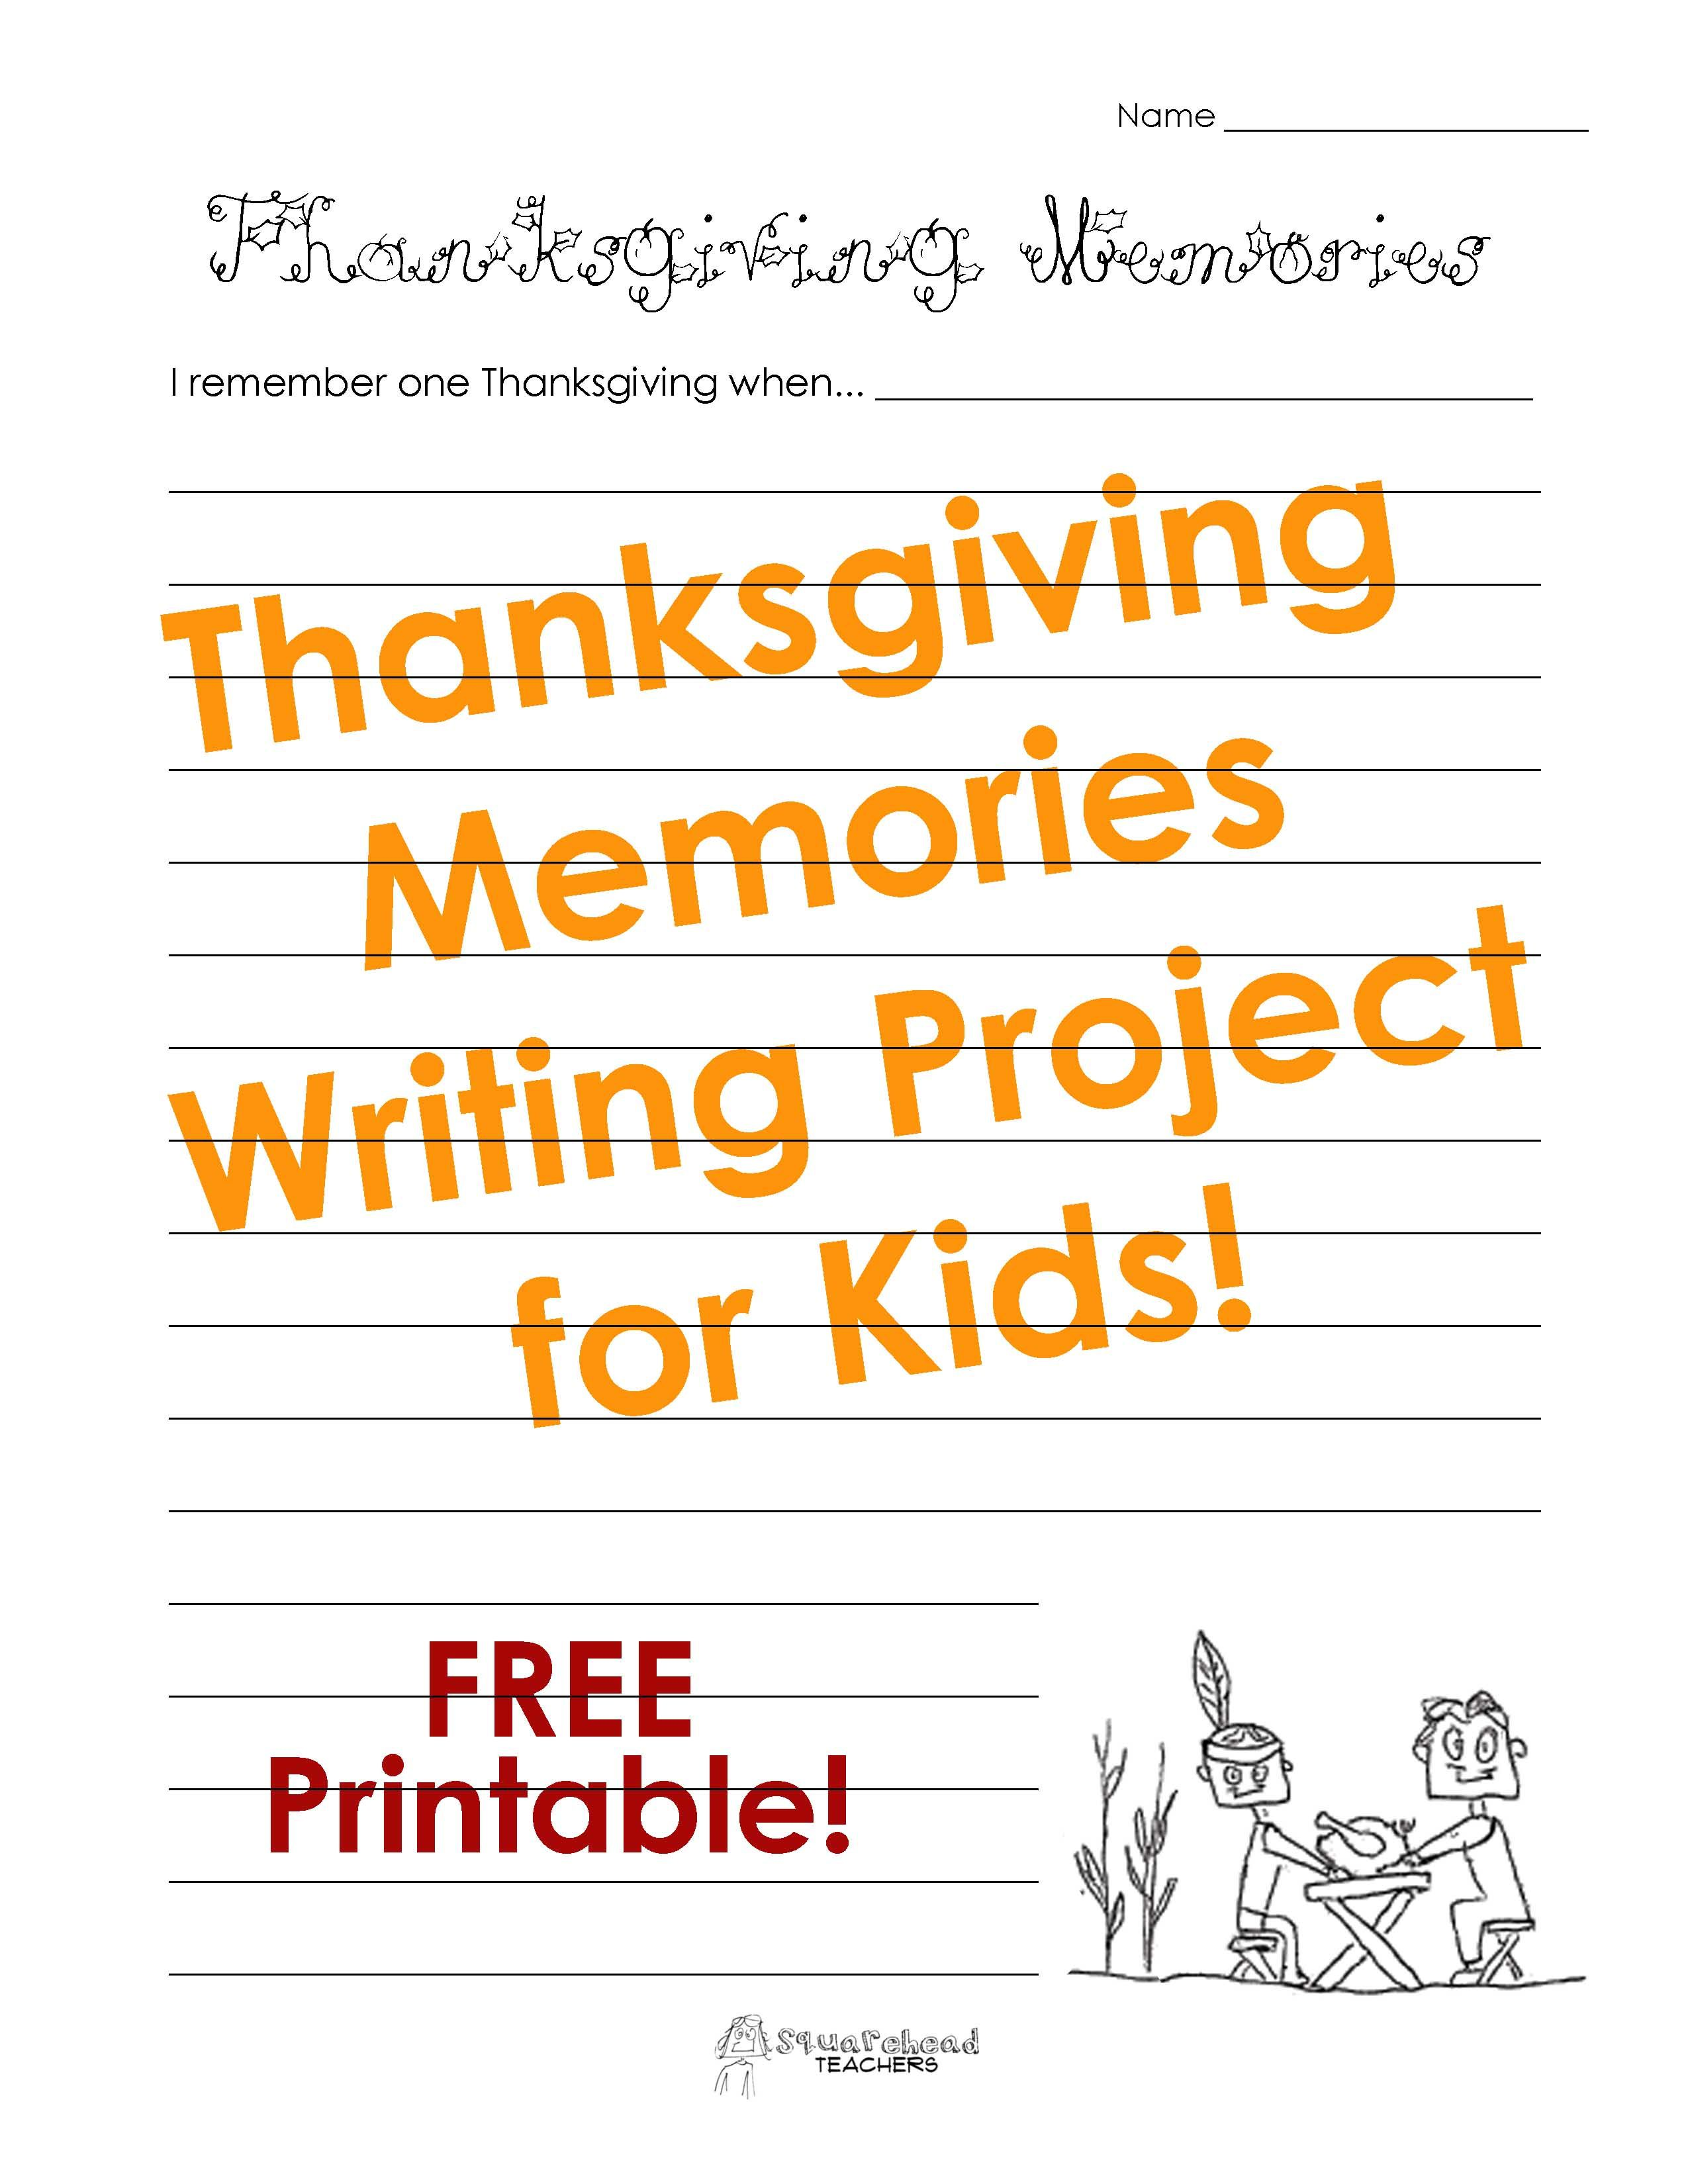 Thanksgiving Memories Writing Project For Kids